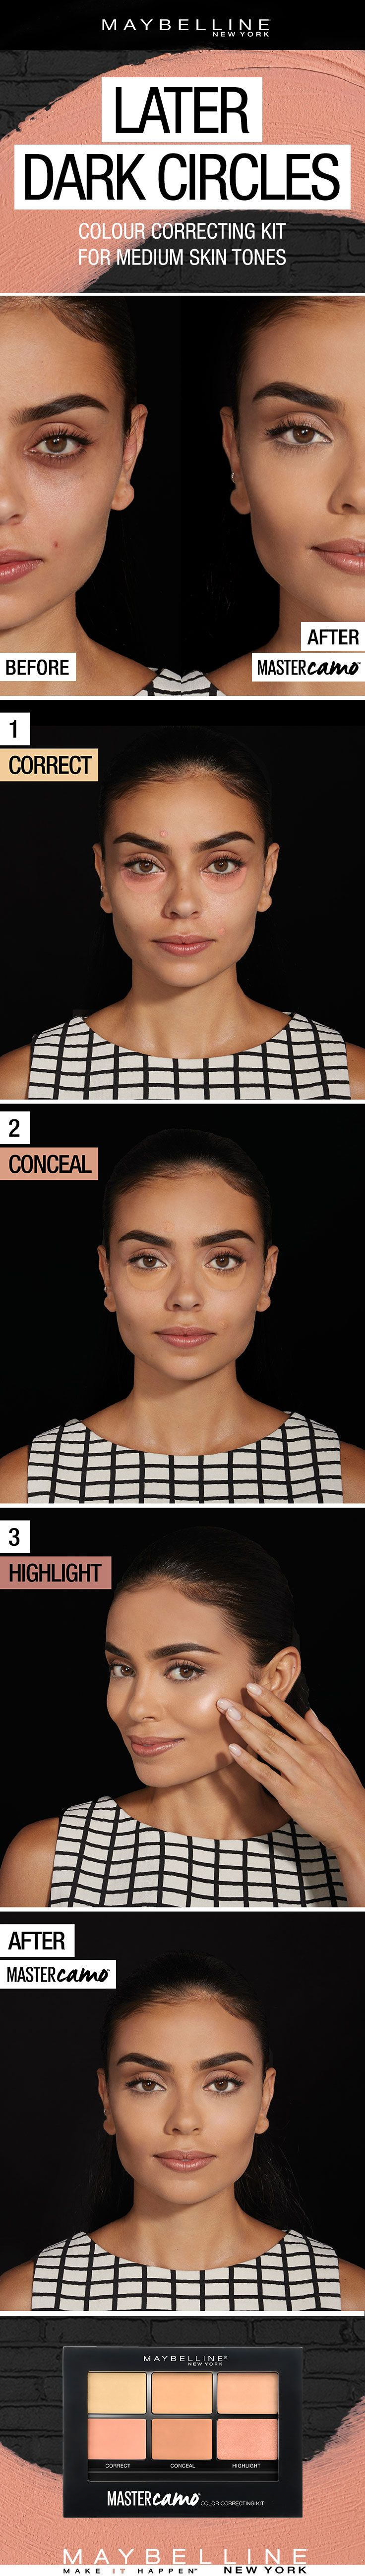 Girls with dark circles get it. Under-eye bags, dark spots and dark circles — all of it's a drag. Especially for medium skin tones. And with all the remedies and color correcting concealers, tricks an